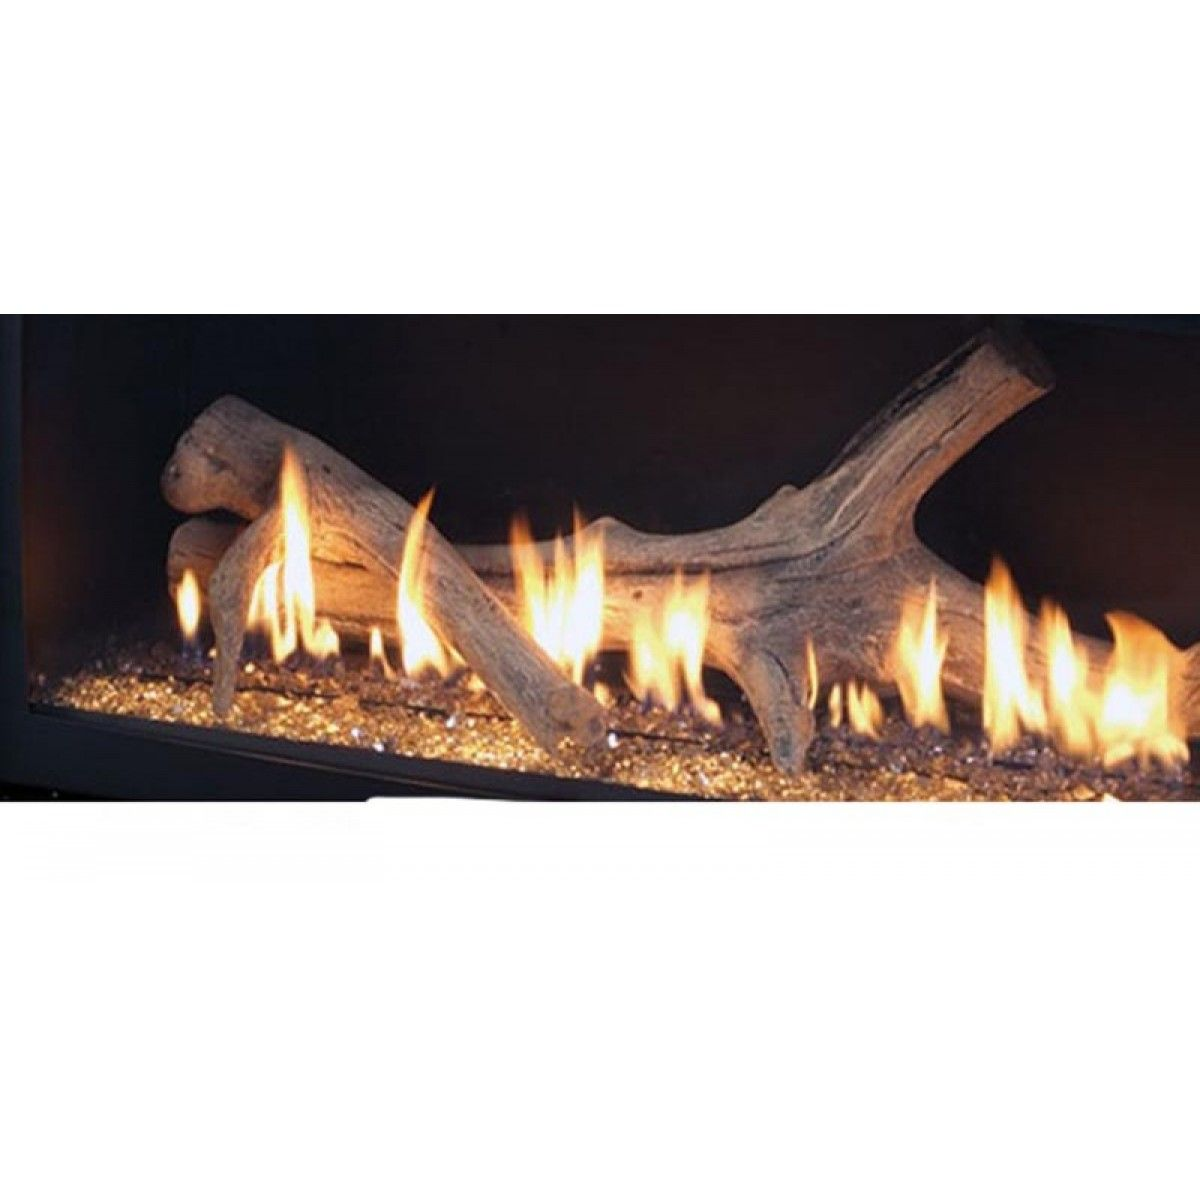 Majestic Adw600 Aged Driftwood Log Set For Wdv600 Gas Fireplace Logs Driftwood Fire Gas Fire Logs